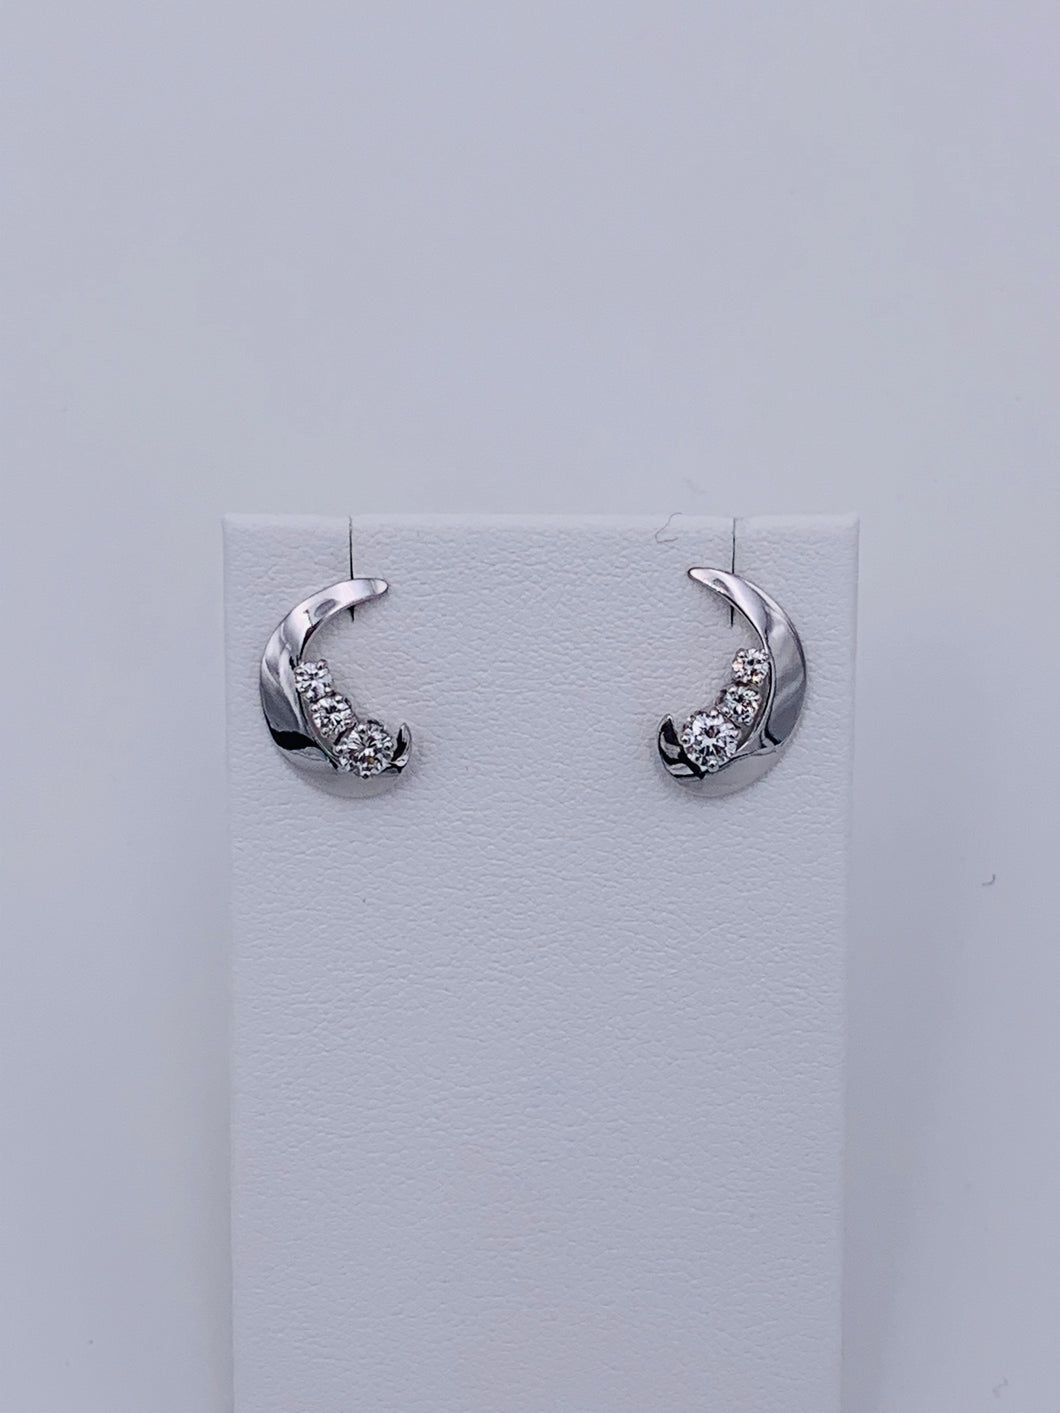 14 Karat White Gold Half-Moon Diamond Earrings